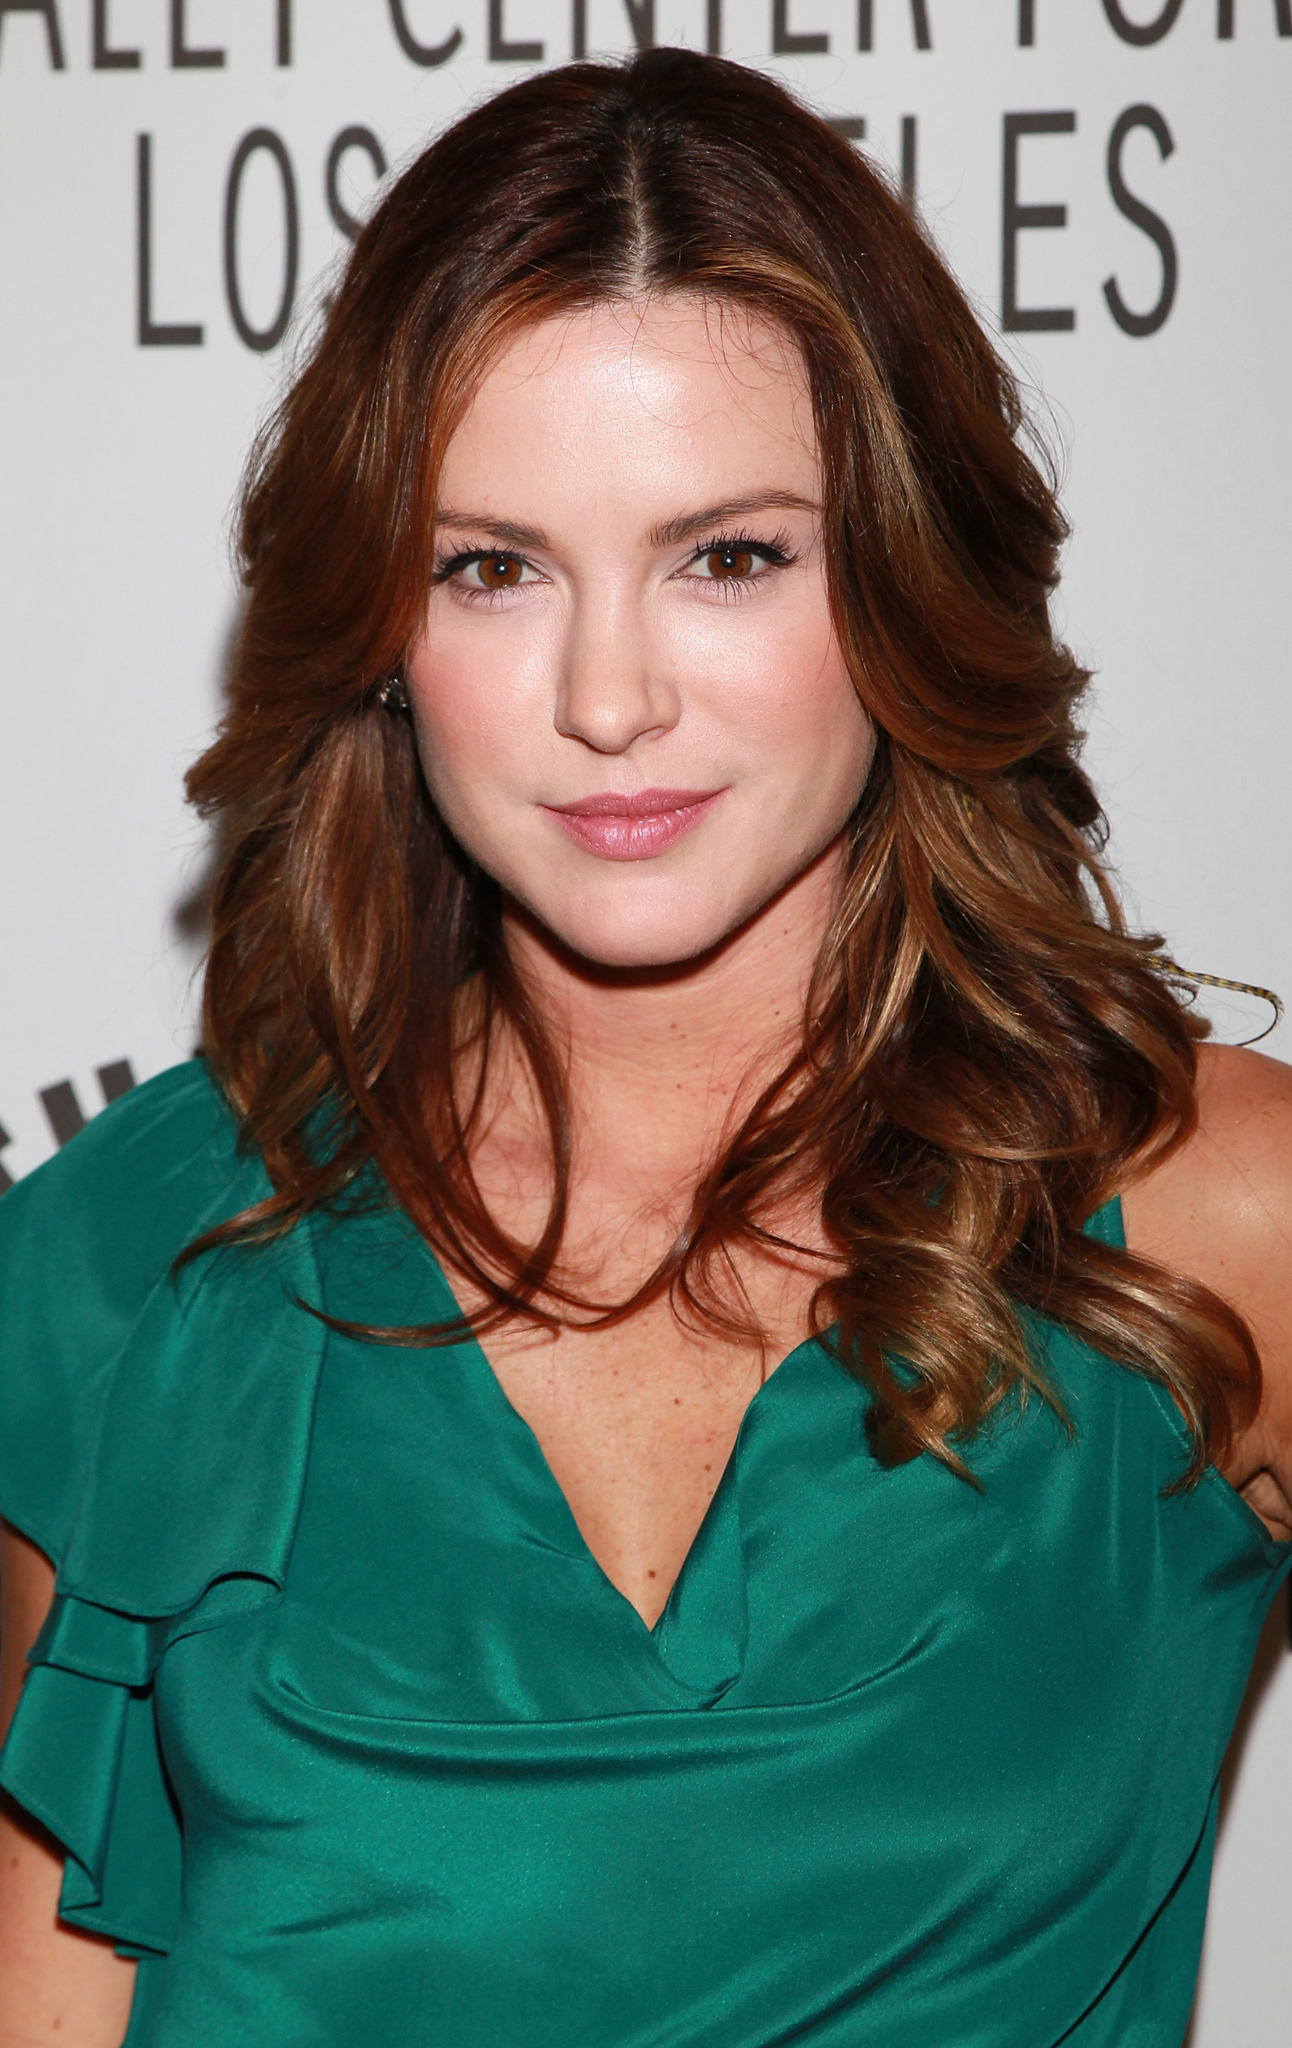 Danneel ackles imdb thecheapjerseys Choice Image